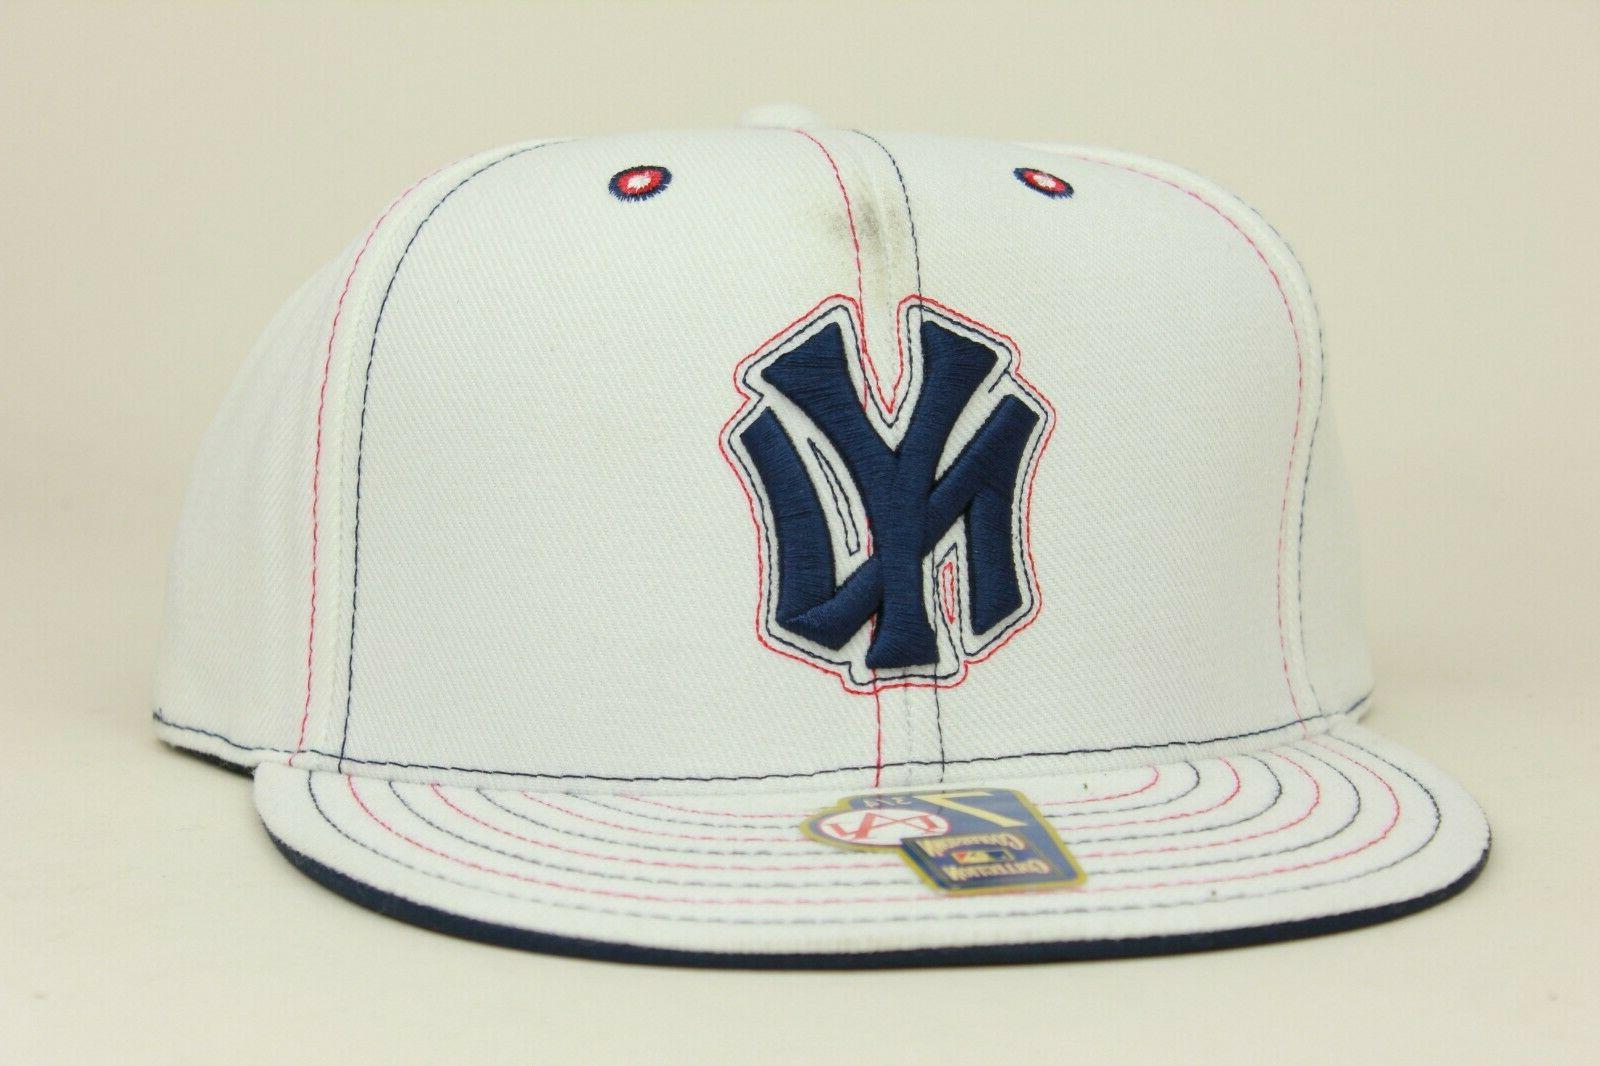 new york yankees white navy red cooperstown